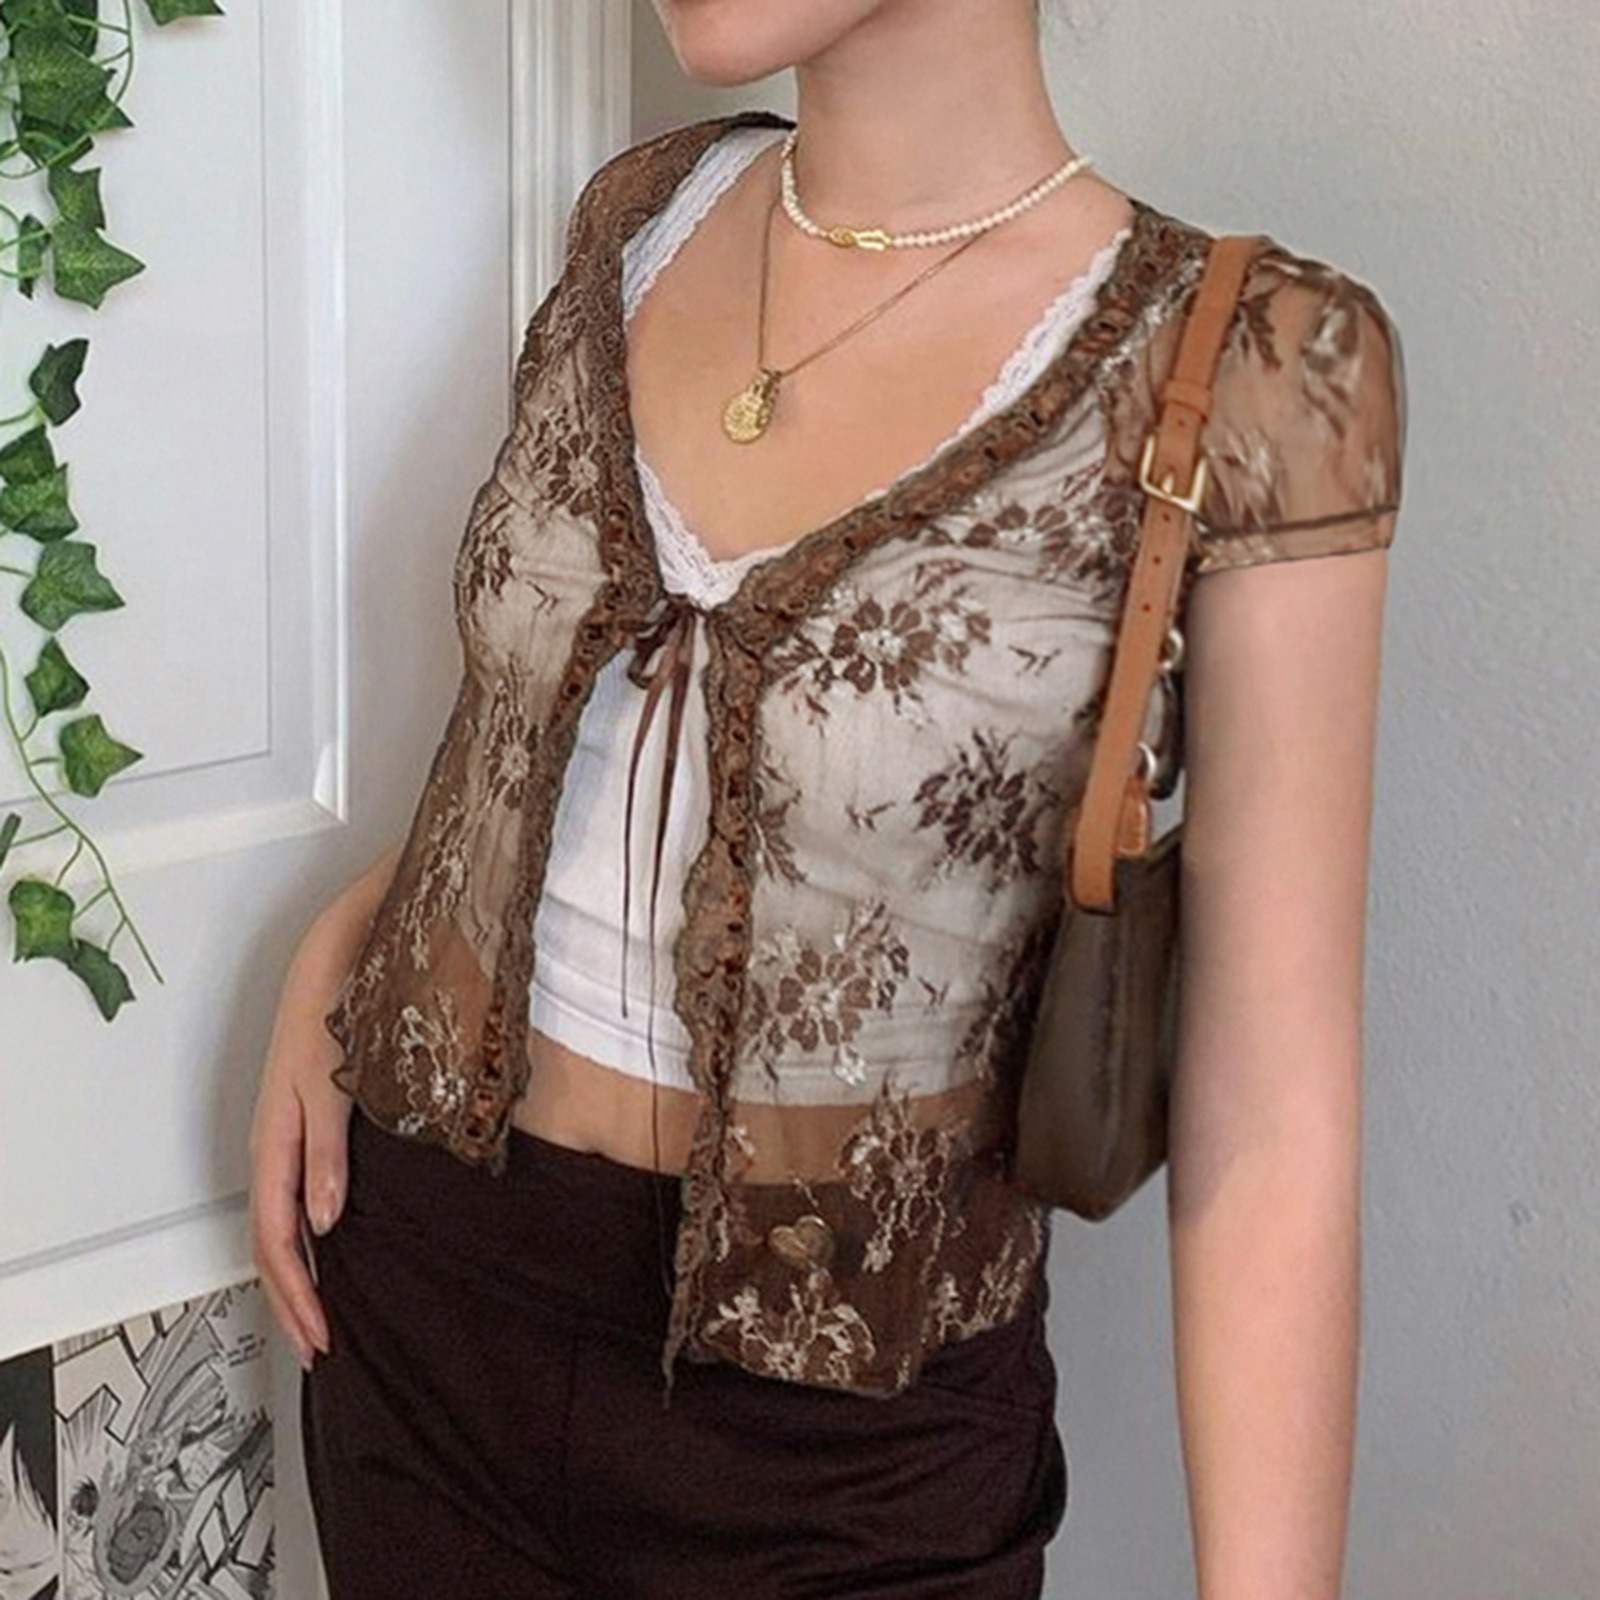 Floral Lace Cardigans Brown  Frill Cute T Shirt Tie Up Short Sleeve Tshirt Women Harajuku Tee Top Vintage